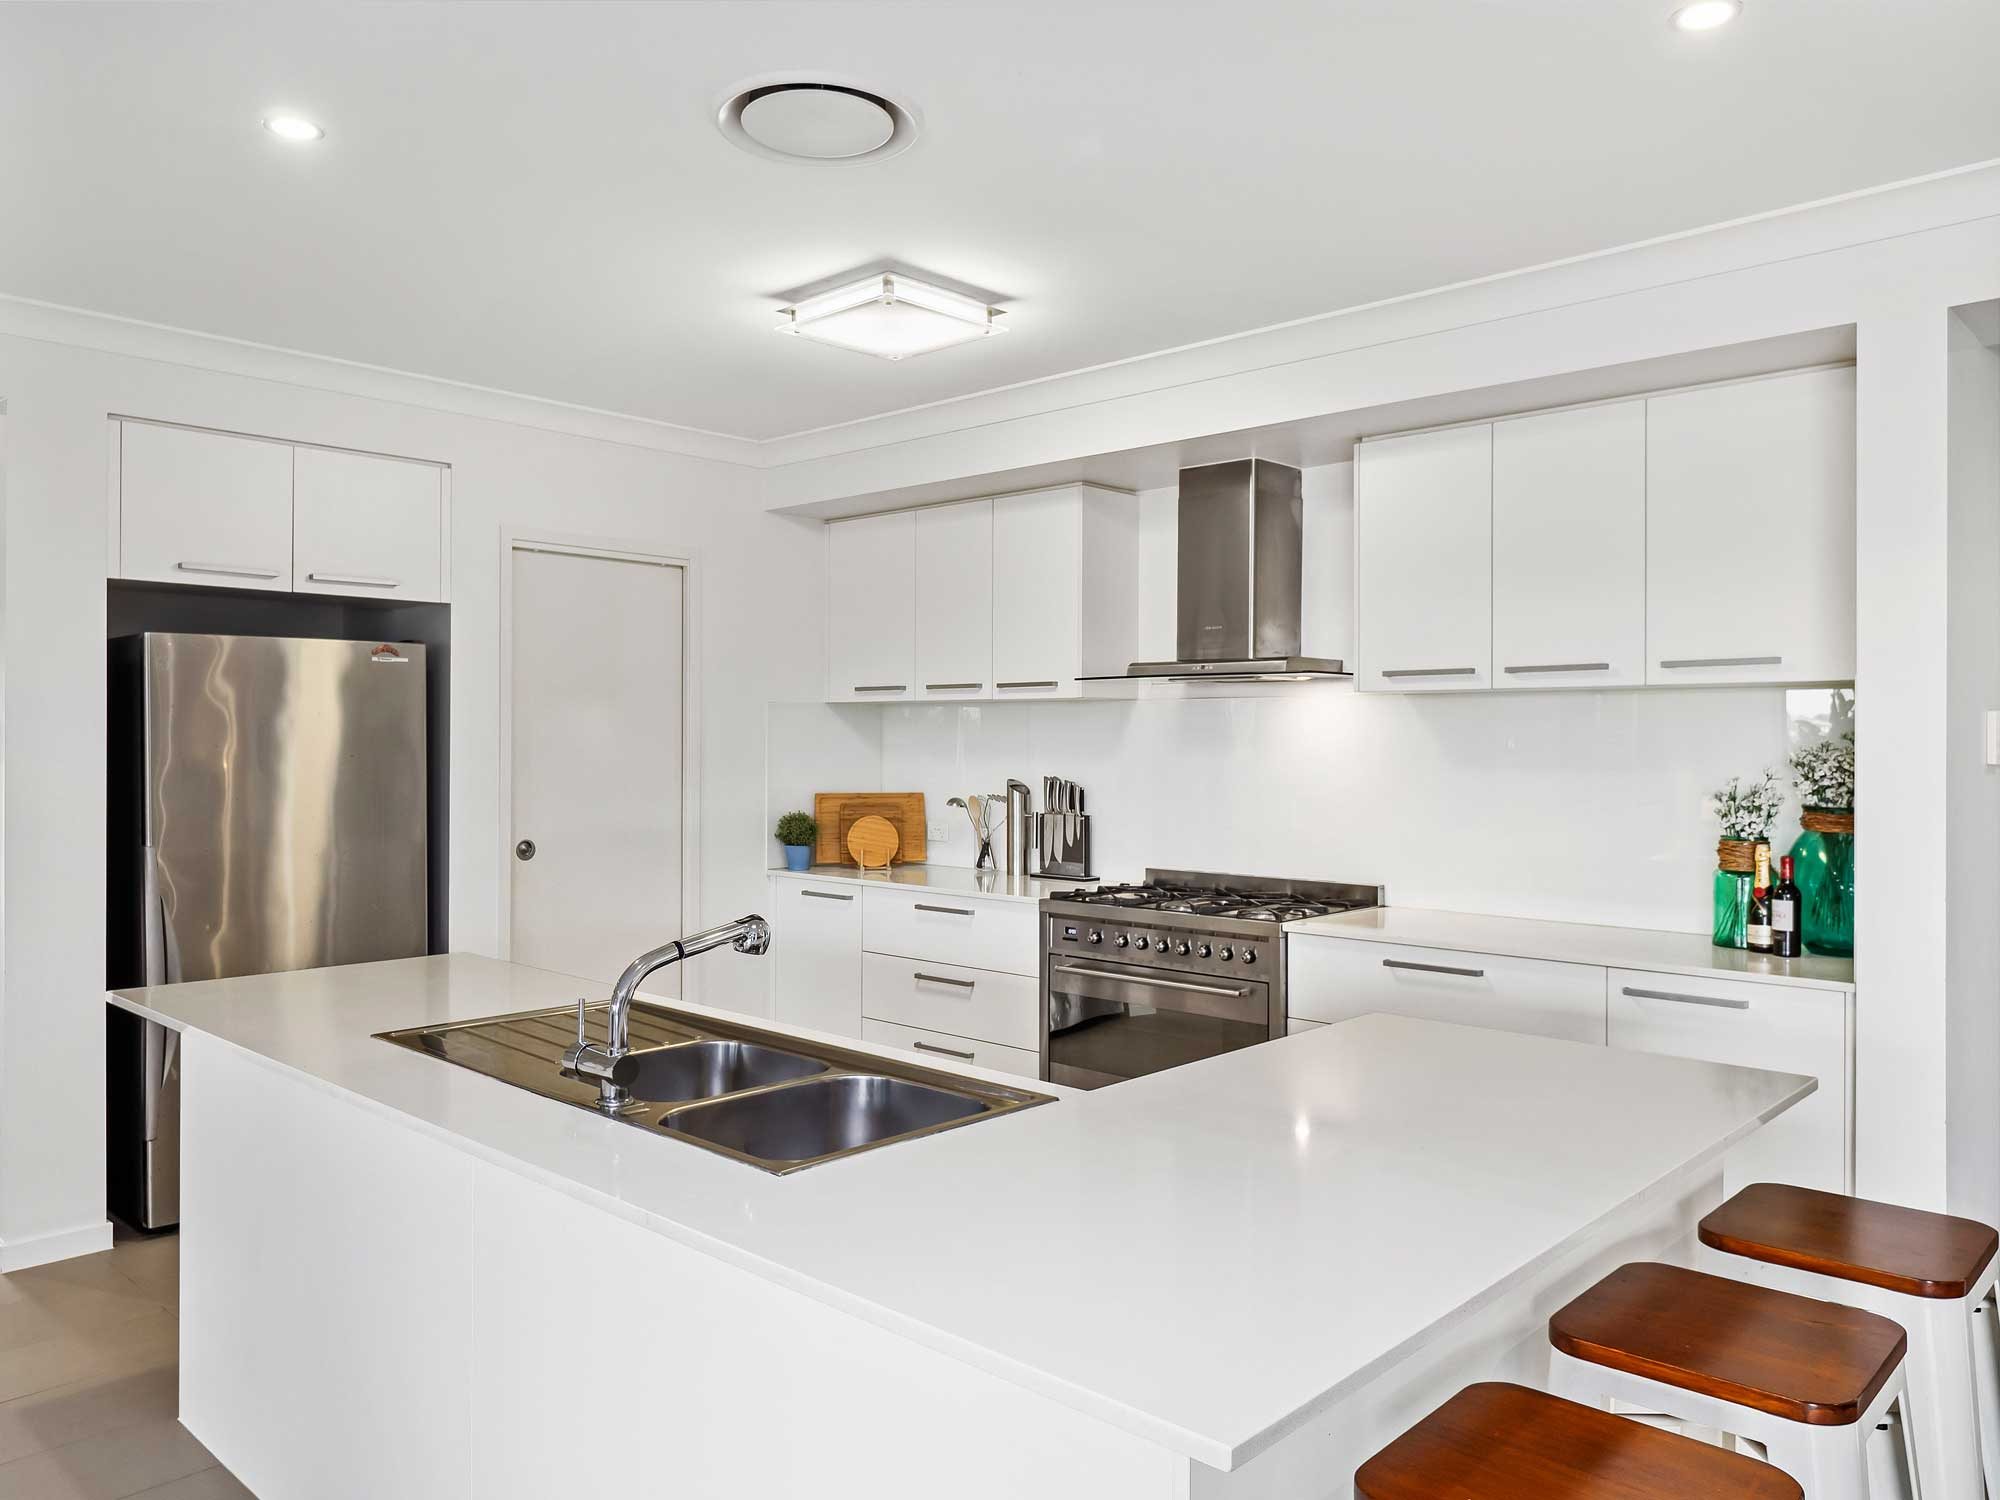 The kitchen - Real estate photography for a new home listing at Cashmere, Brisbane north side